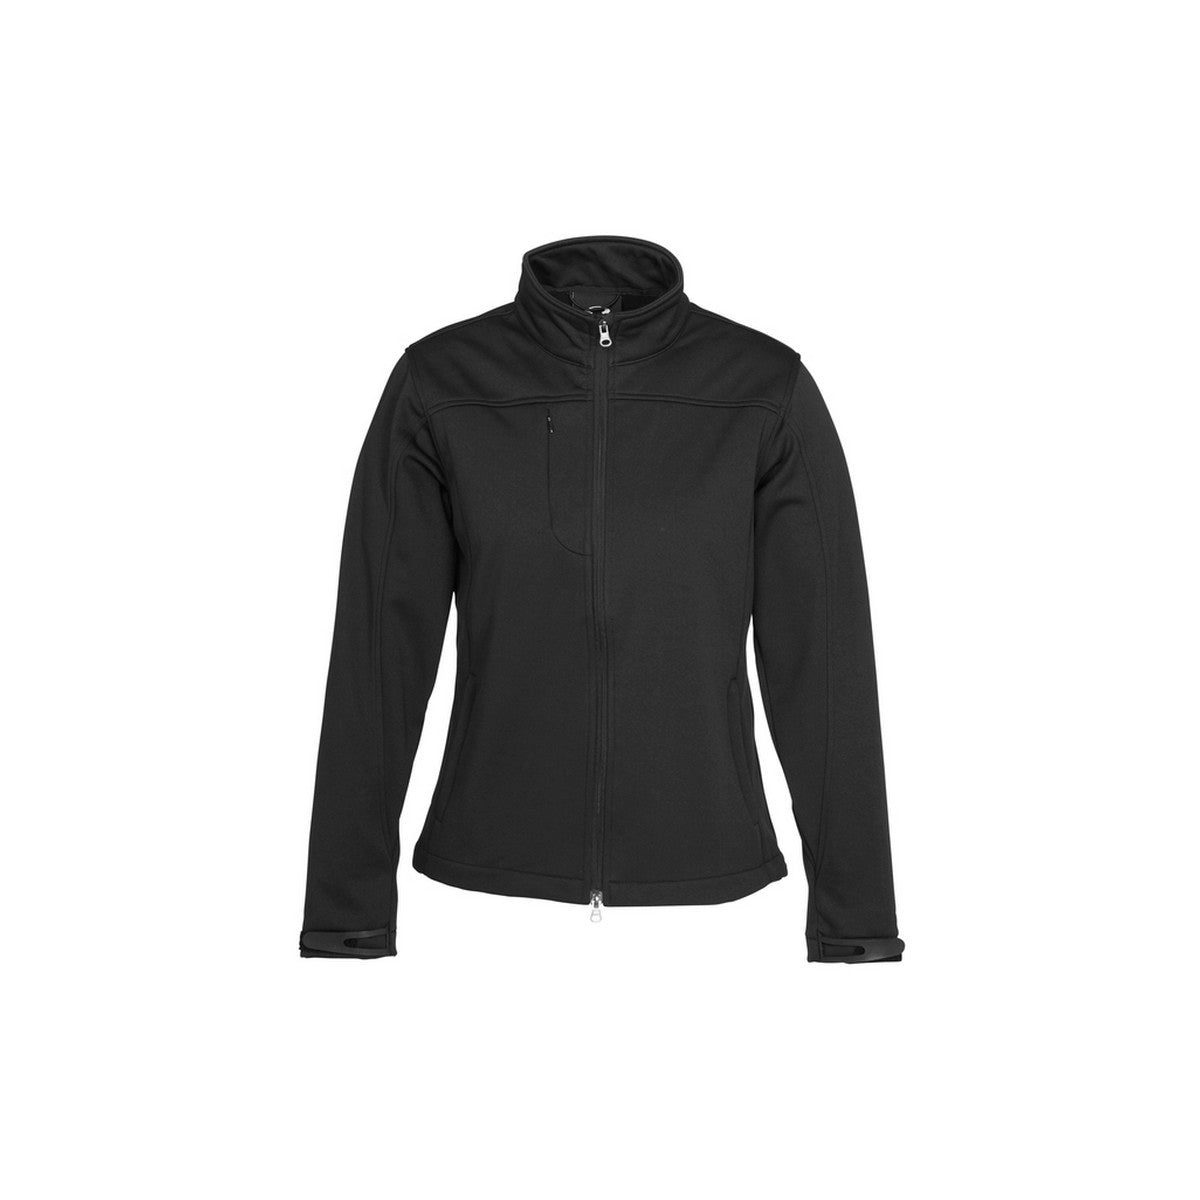 Image of Biz Collection Soft Shell Jacket- Ladies